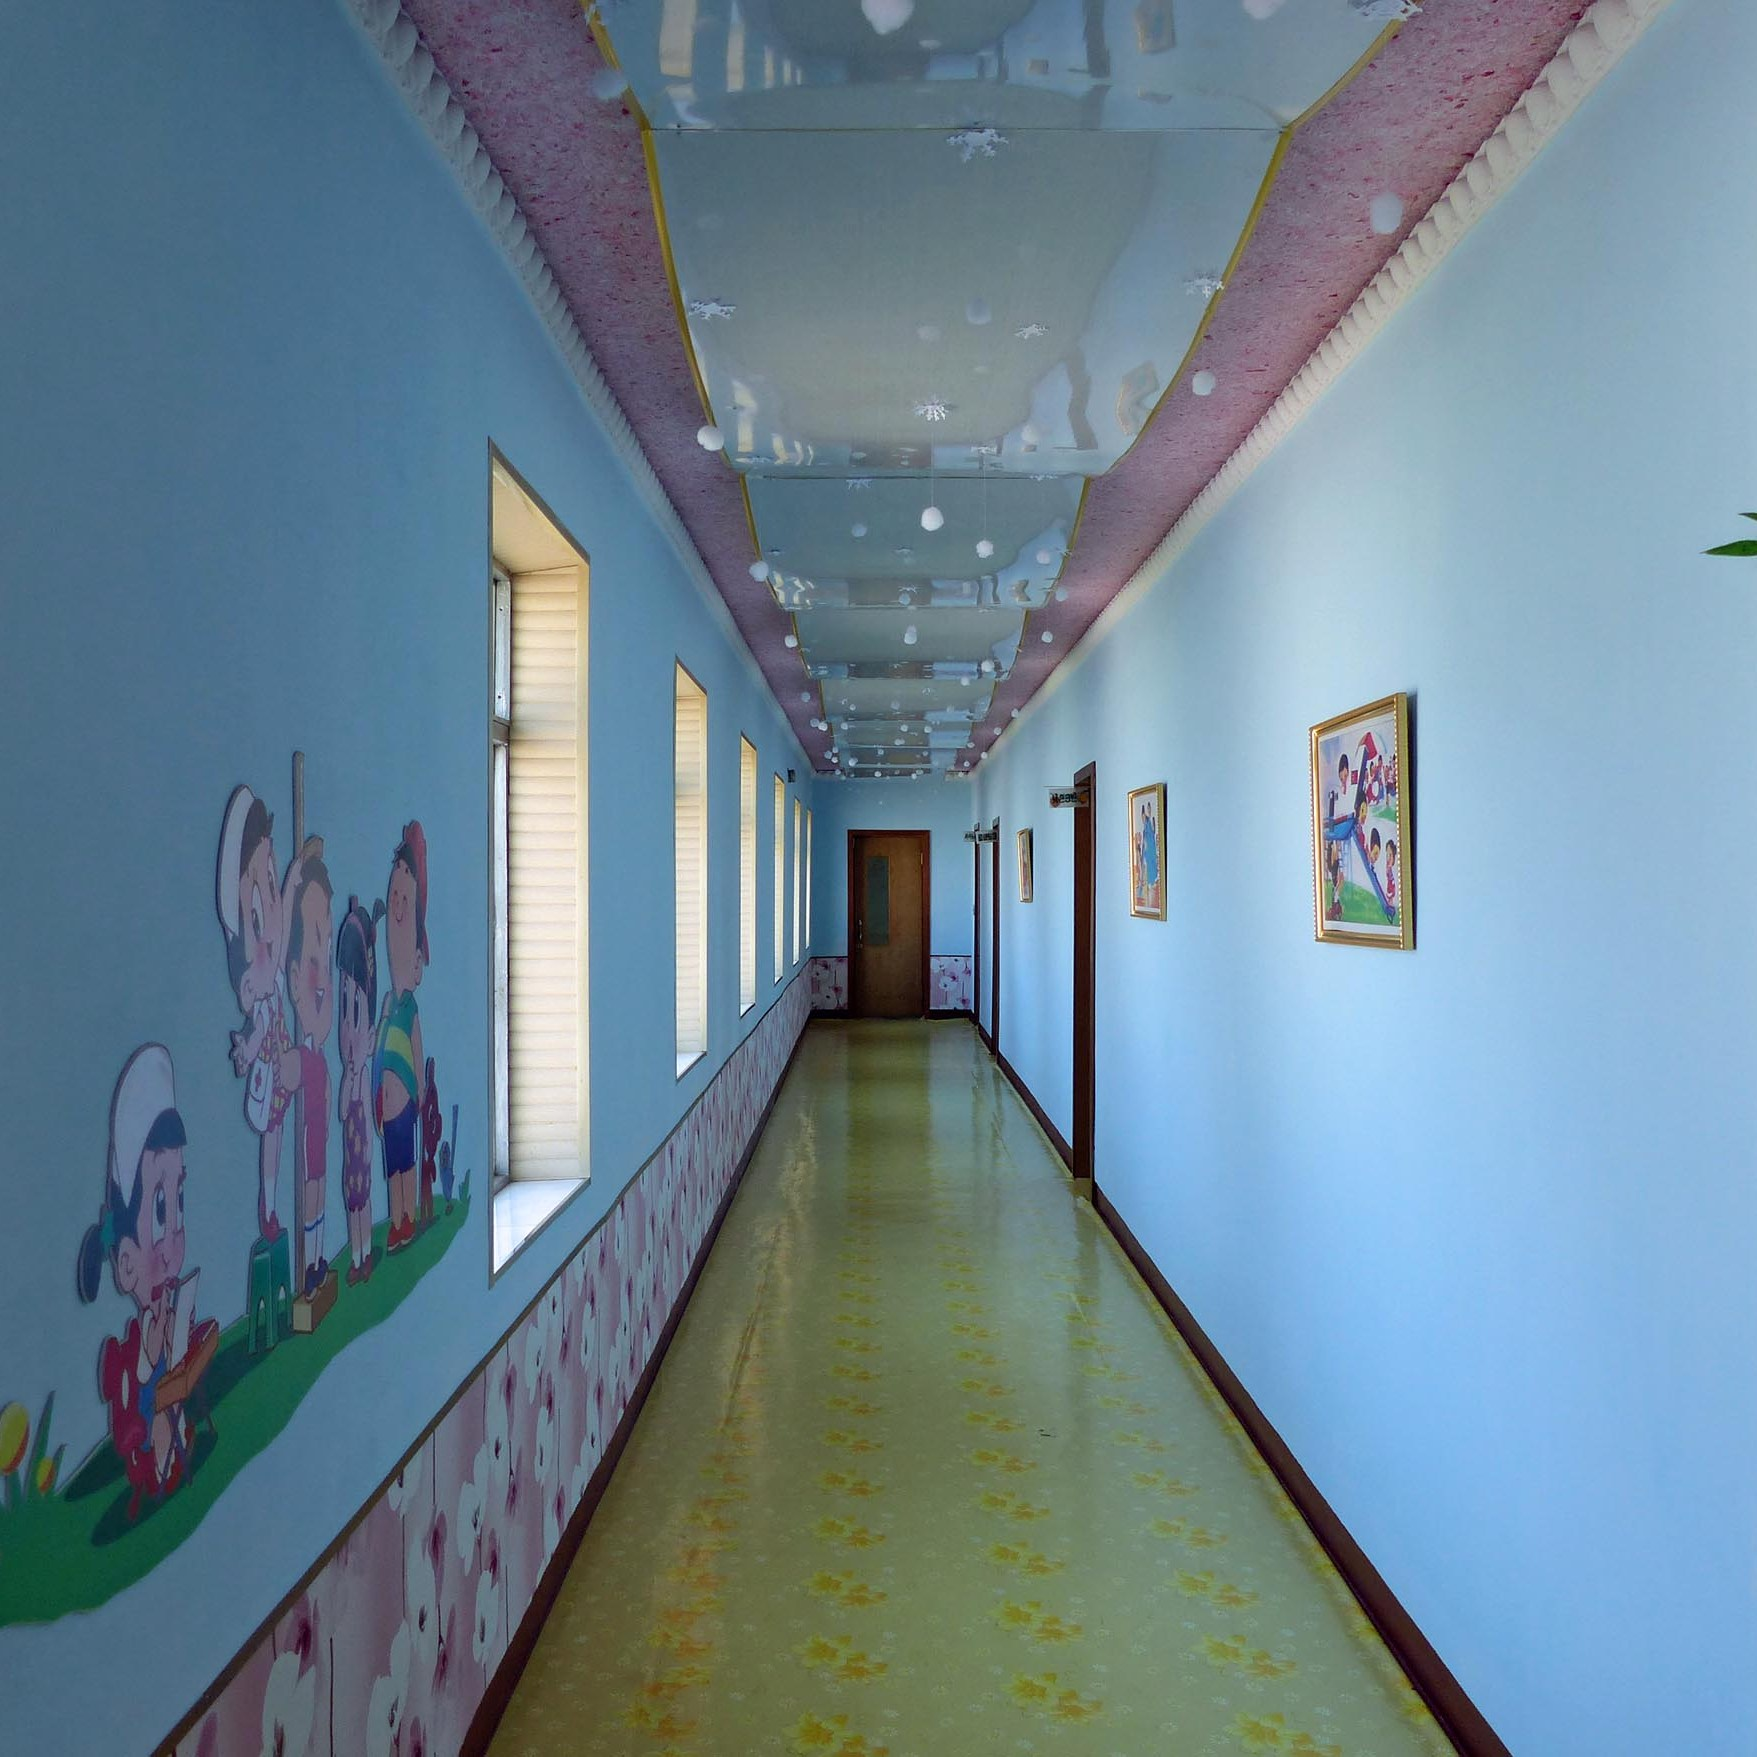 Corridor with pale blue walls and shiny floor